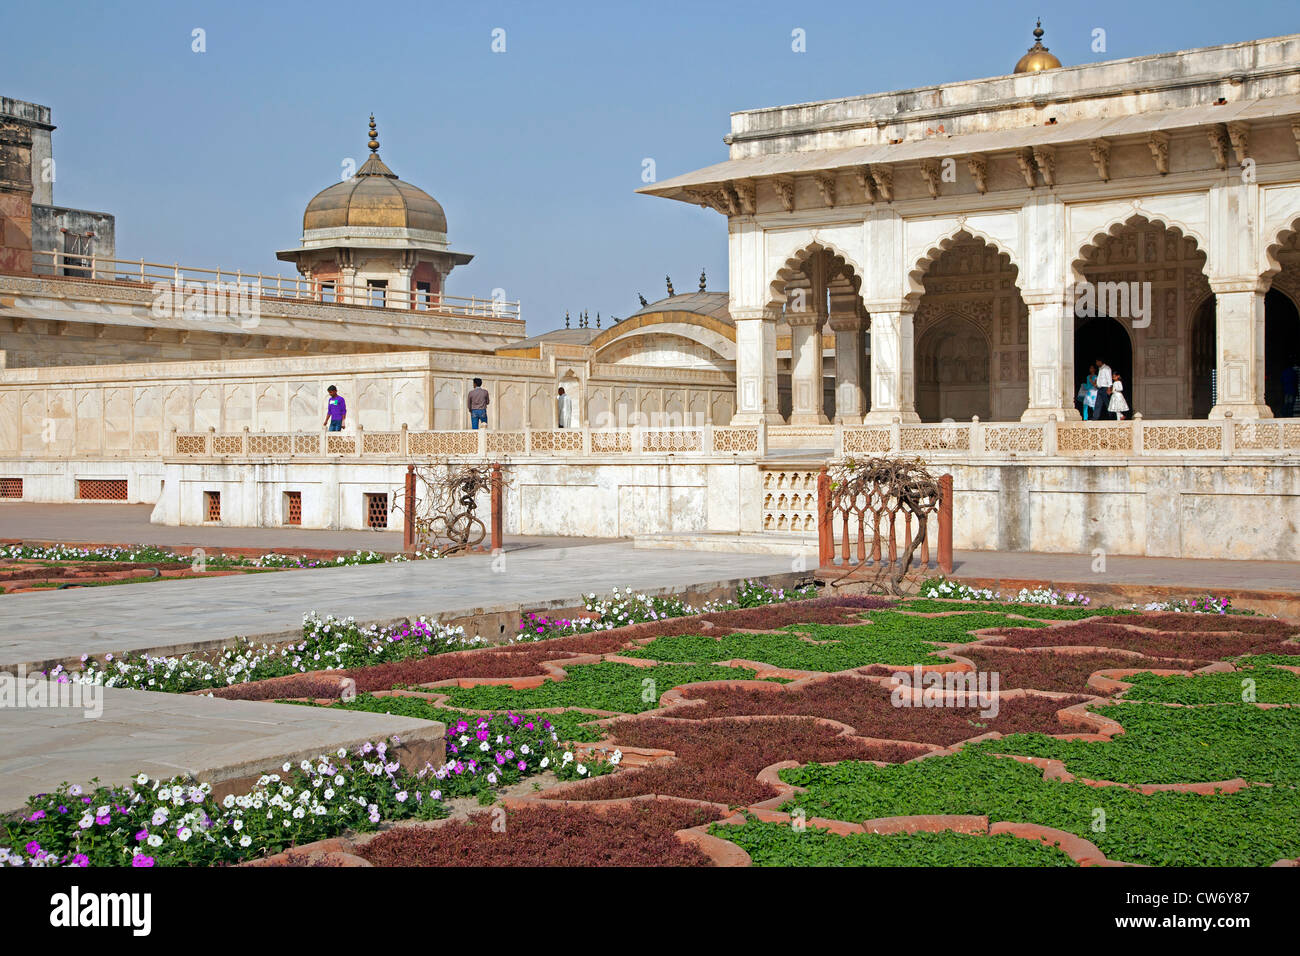 Anguri Bagh gardens in the Agra Fort / Red Fort in Agra, Uttar Pradesh, India - Stock Image